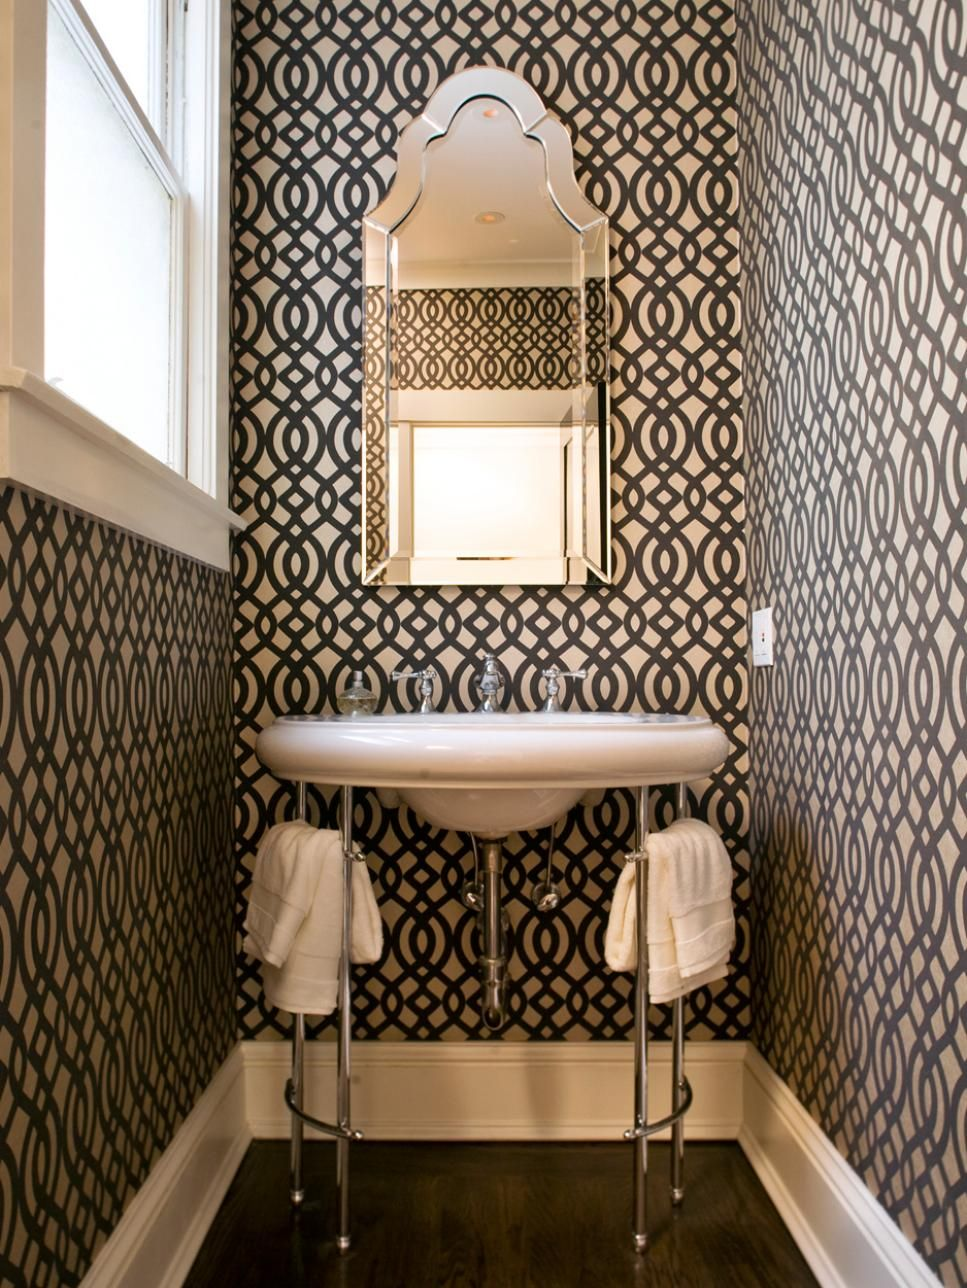 Photos On Add style and function to your small space with these helpful tips and inspiring bathrooms from HGTV Remodels